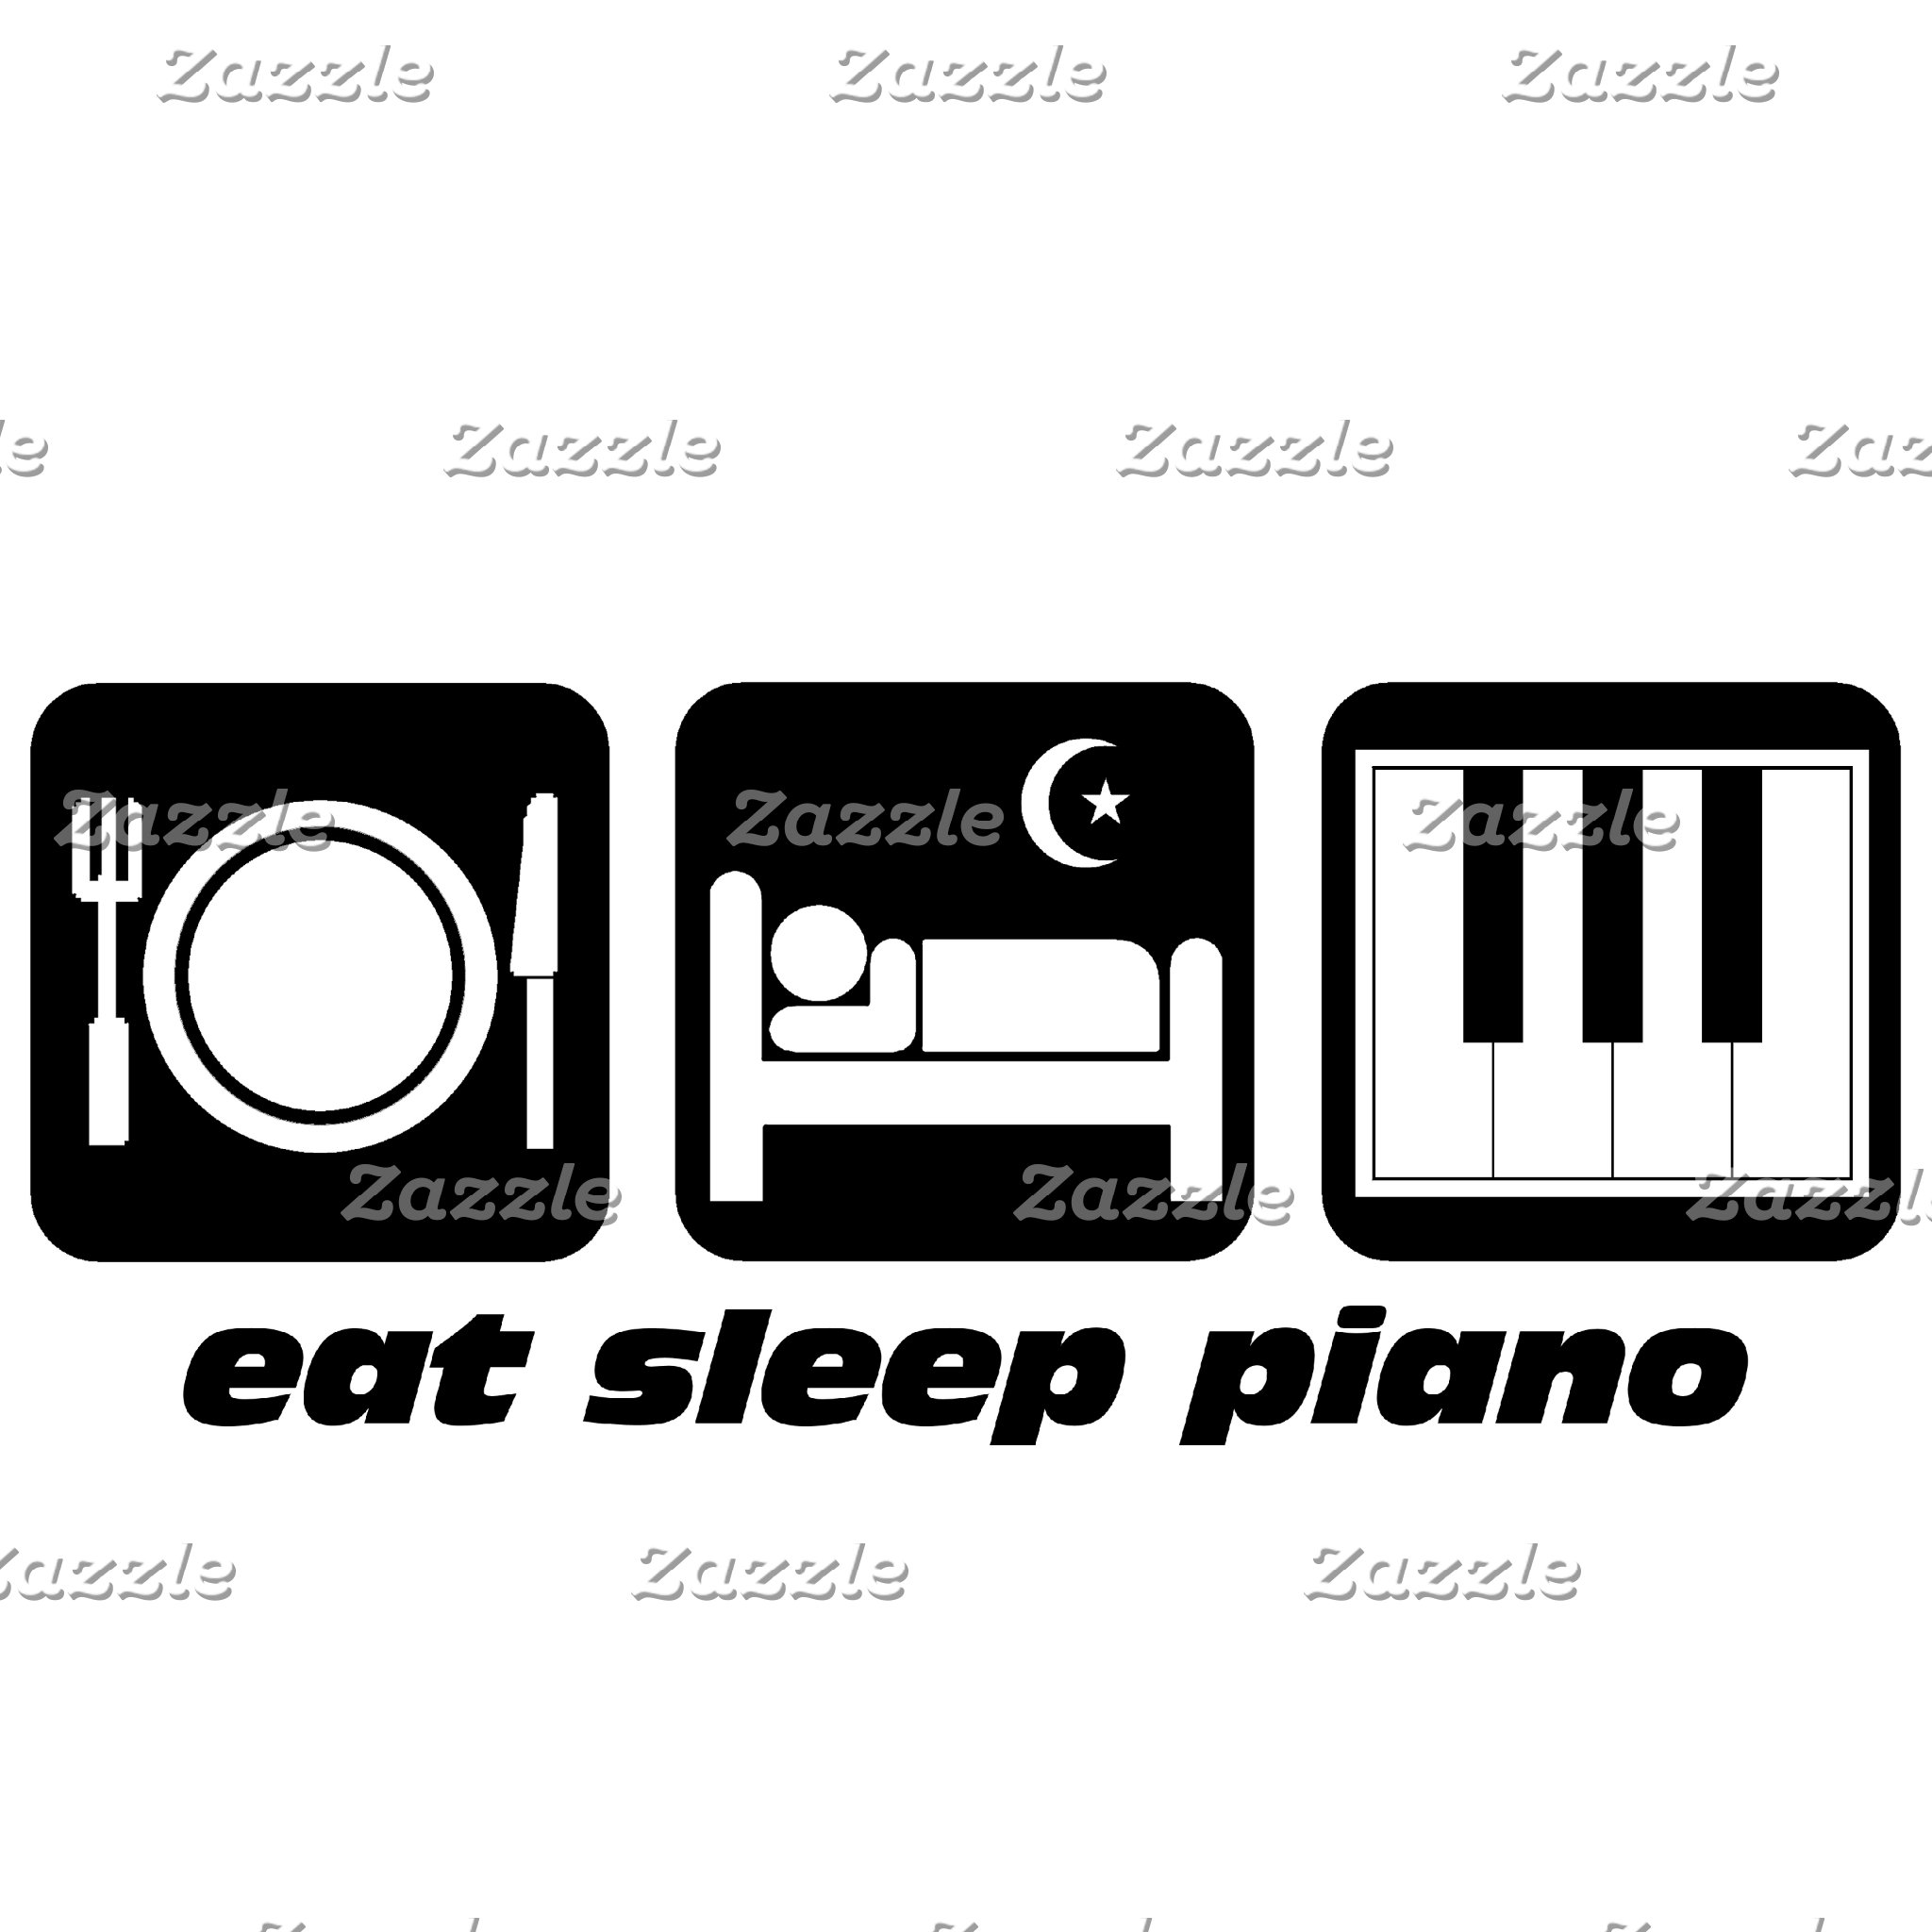 eat sleep piano